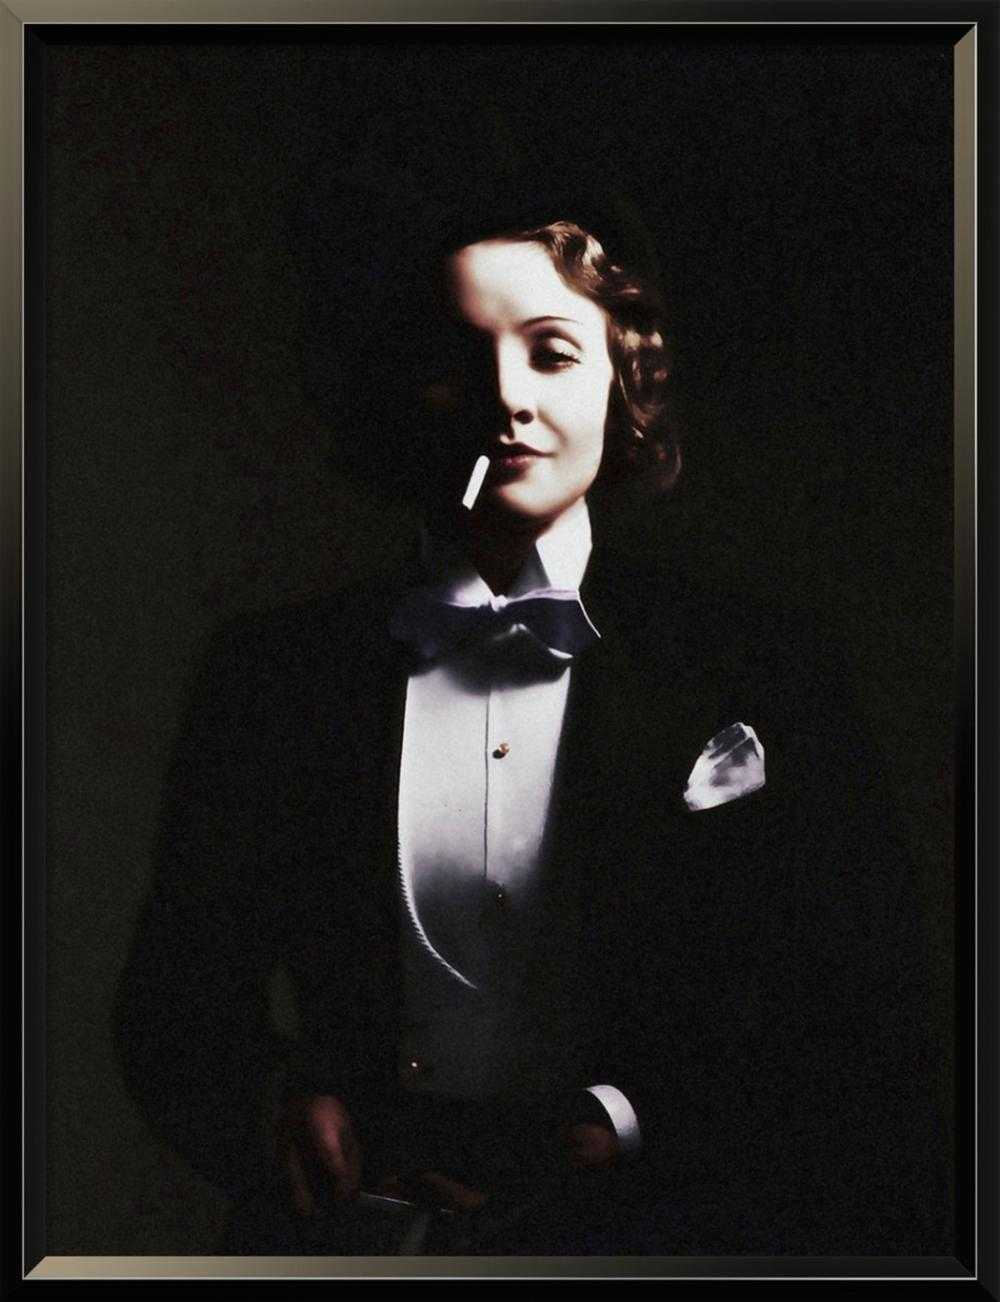 HOLLYWOOD PHOTO ARCHIVE - MARLENE DIETRICH IN TOP HAT - TINTED